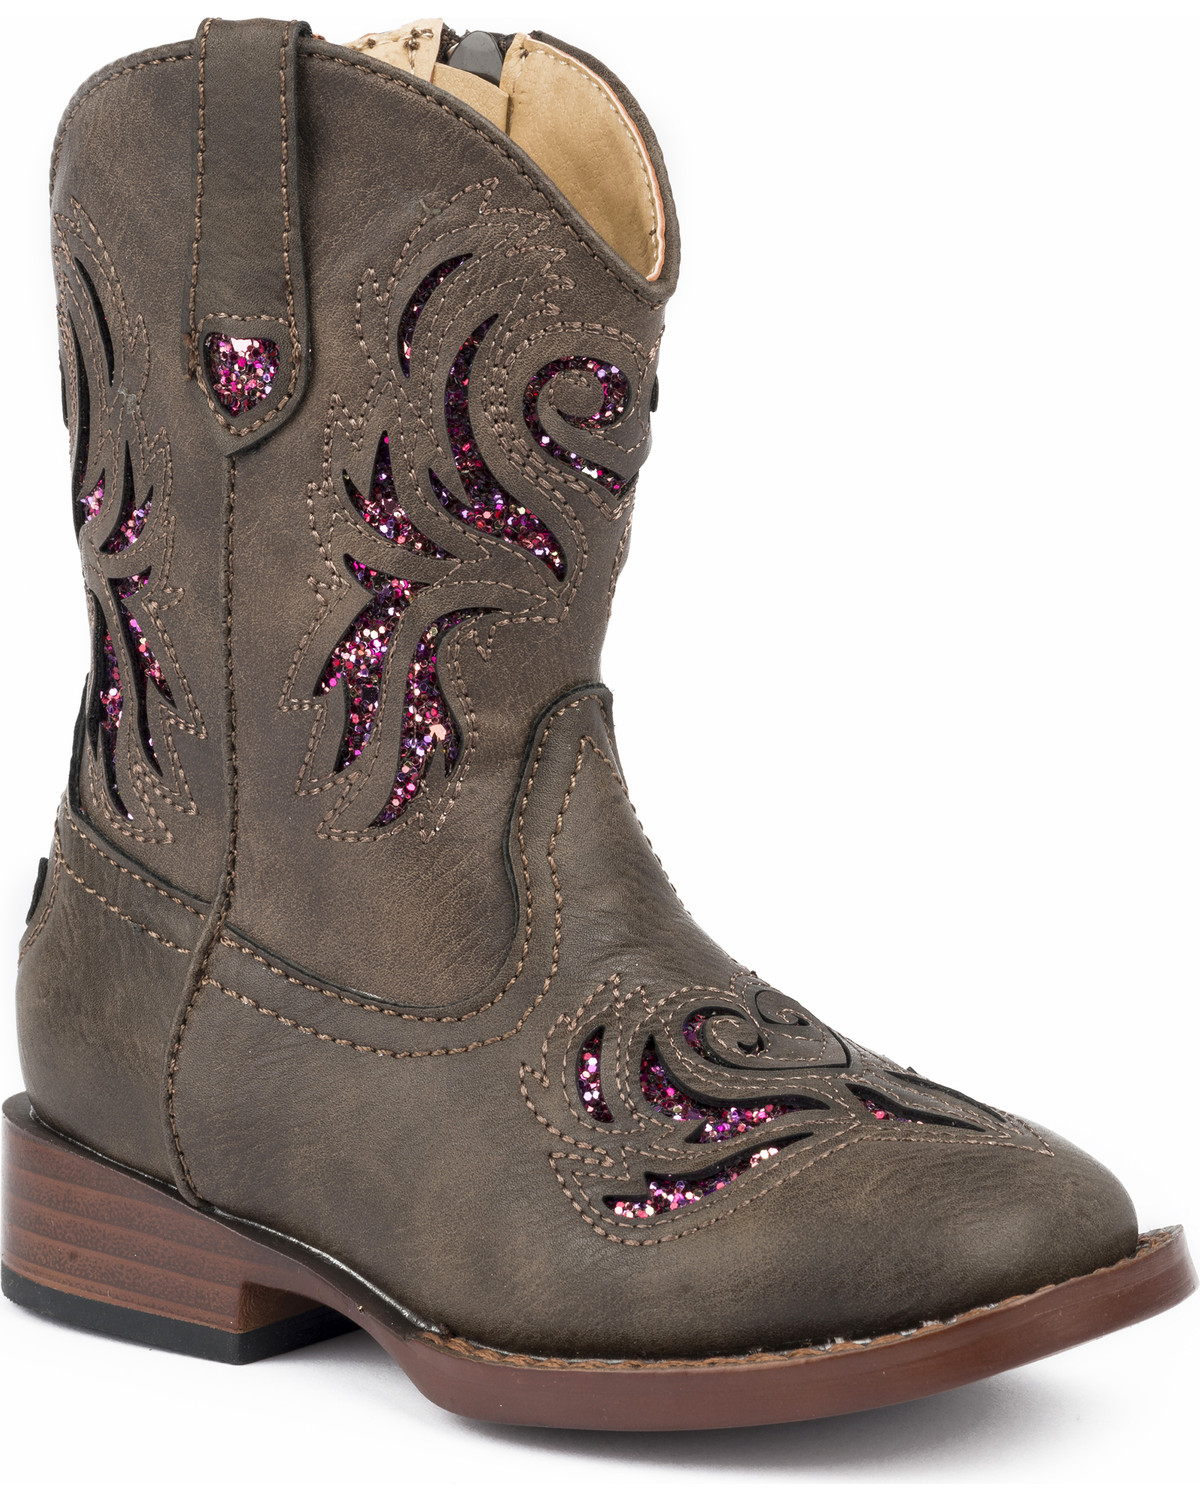 343a0619681 Roper Toddler Girls' Brown Glitter Breeze Cowgirl Boots - Square Toe